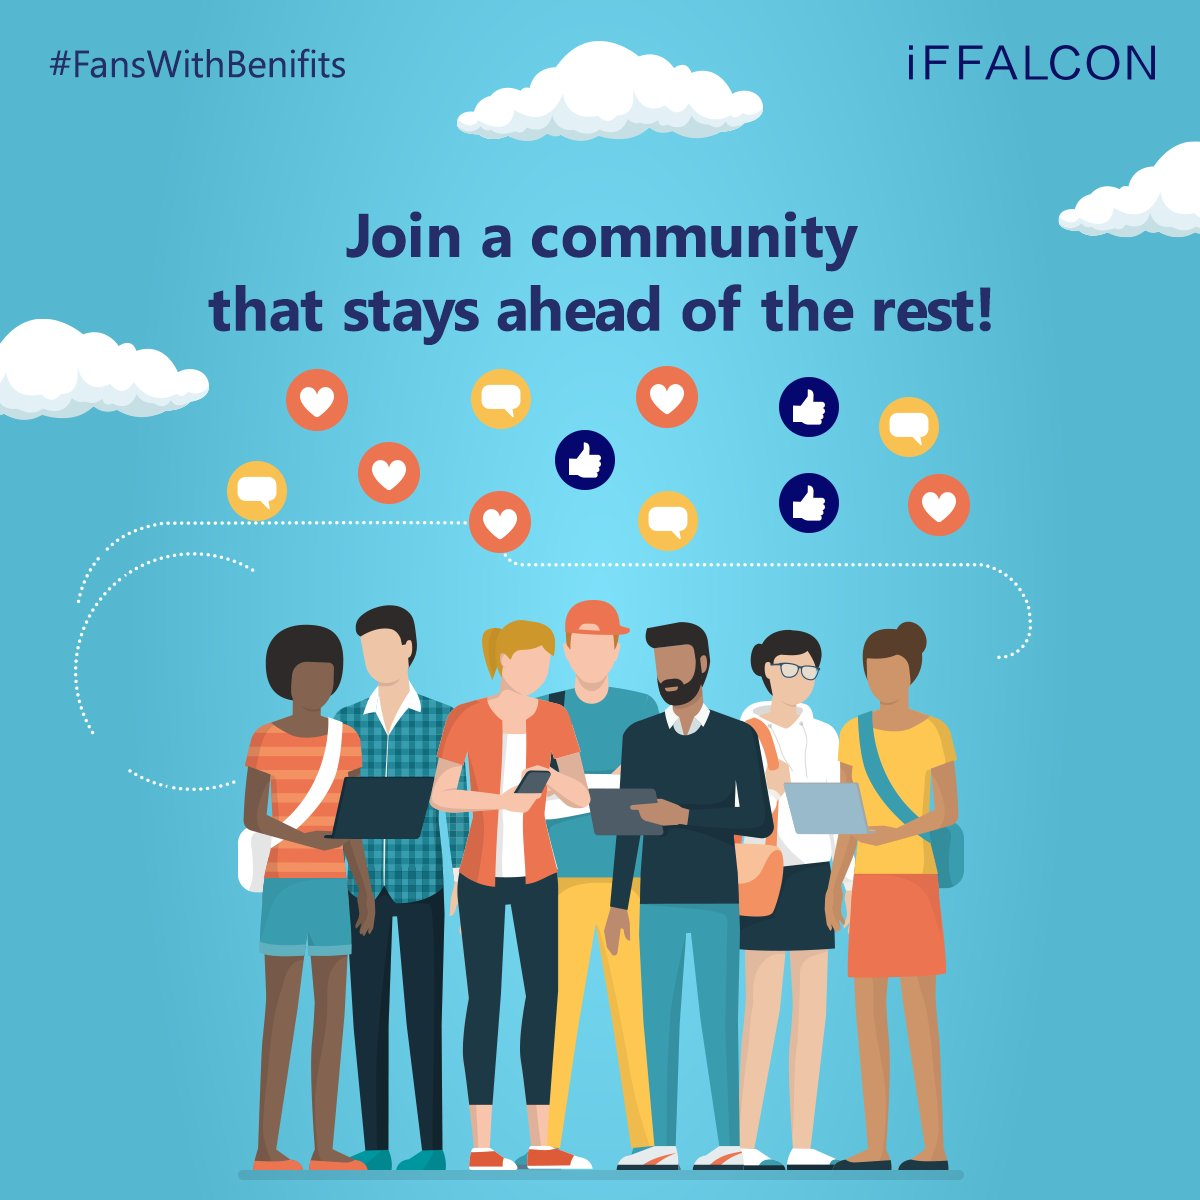 From content that keeps you on top of entertainment tech trends to contests with exciting prizes, iFFALCON users enjoy it all.   Join the iFFALCON fan page and you too can get a chance to win some smart giveaways.  So, what are you waiting for?  #FansWithBenefits #iFFALCON  #AITVpic.twitter.com/qqGVTn1F2e